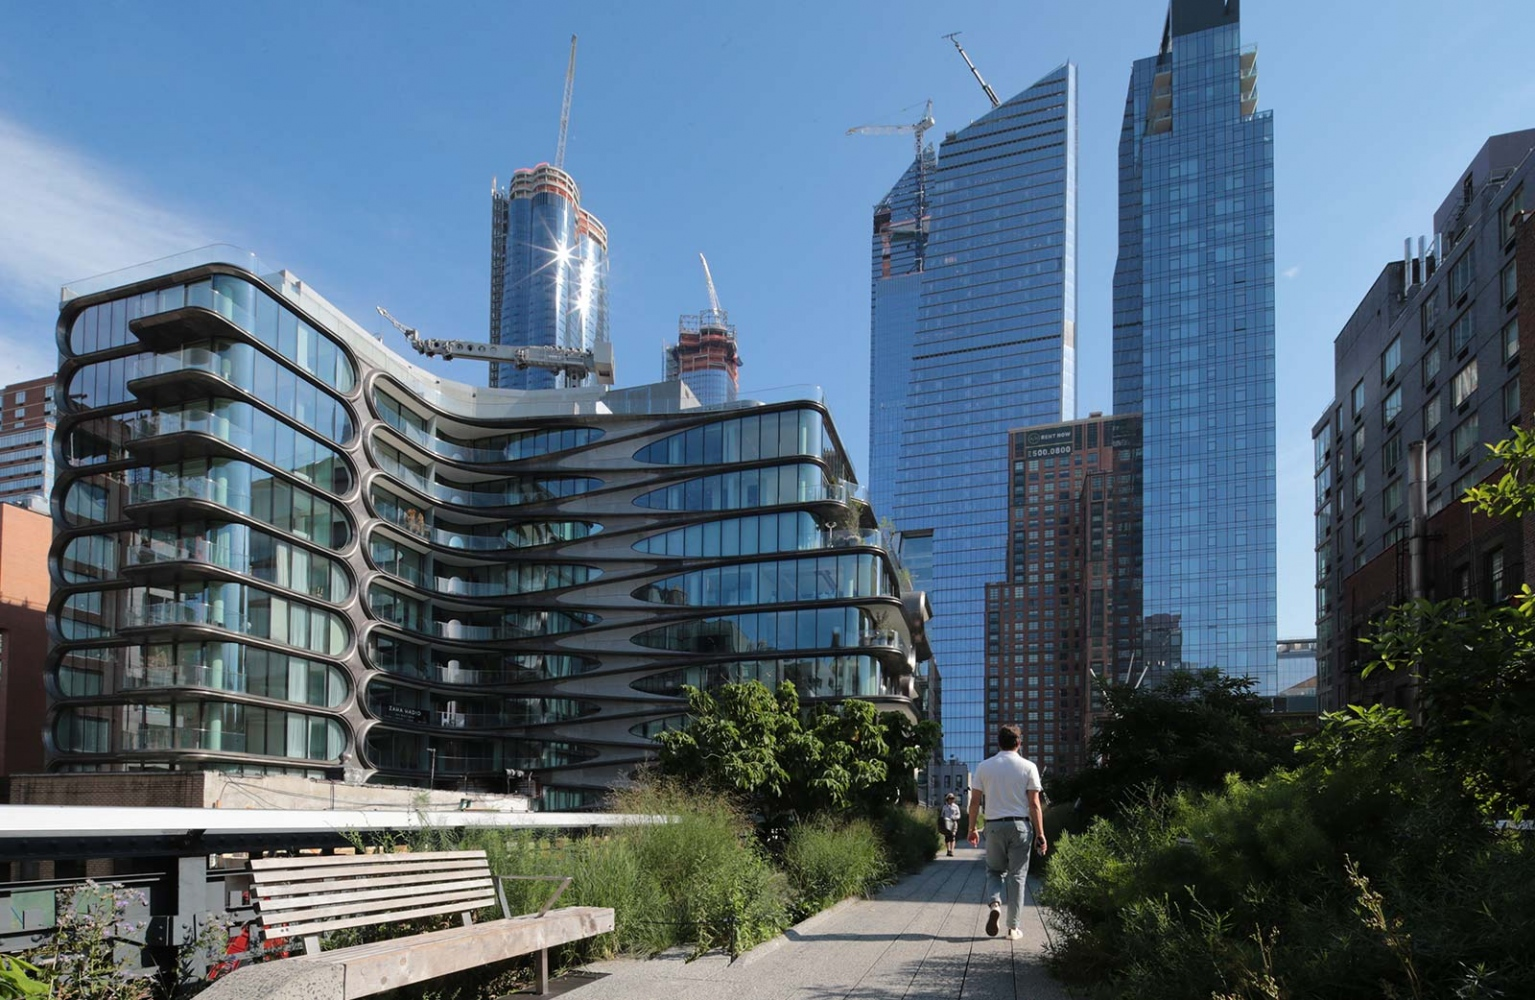 The Zaha Hadid Building, The Highline Park and Hudson Yards.